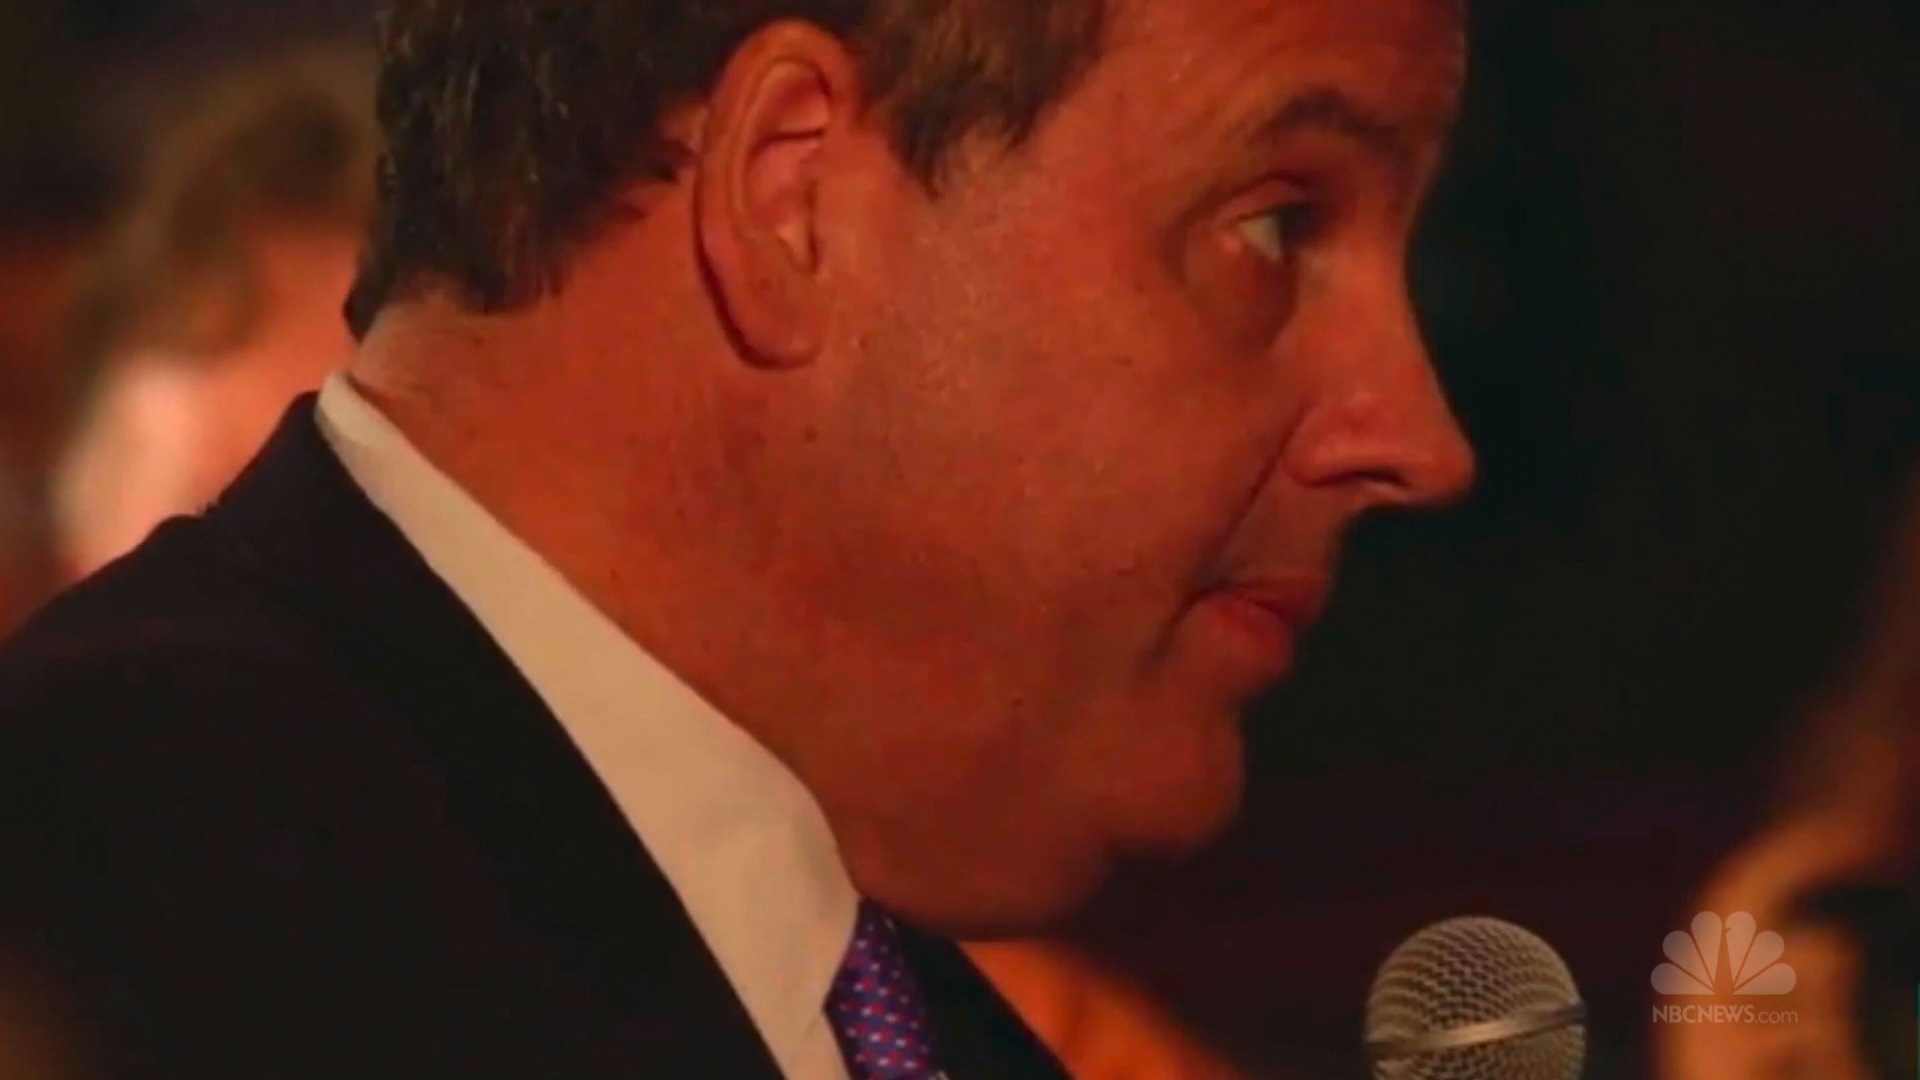 Remembering Chris Christie's 2016 campaign